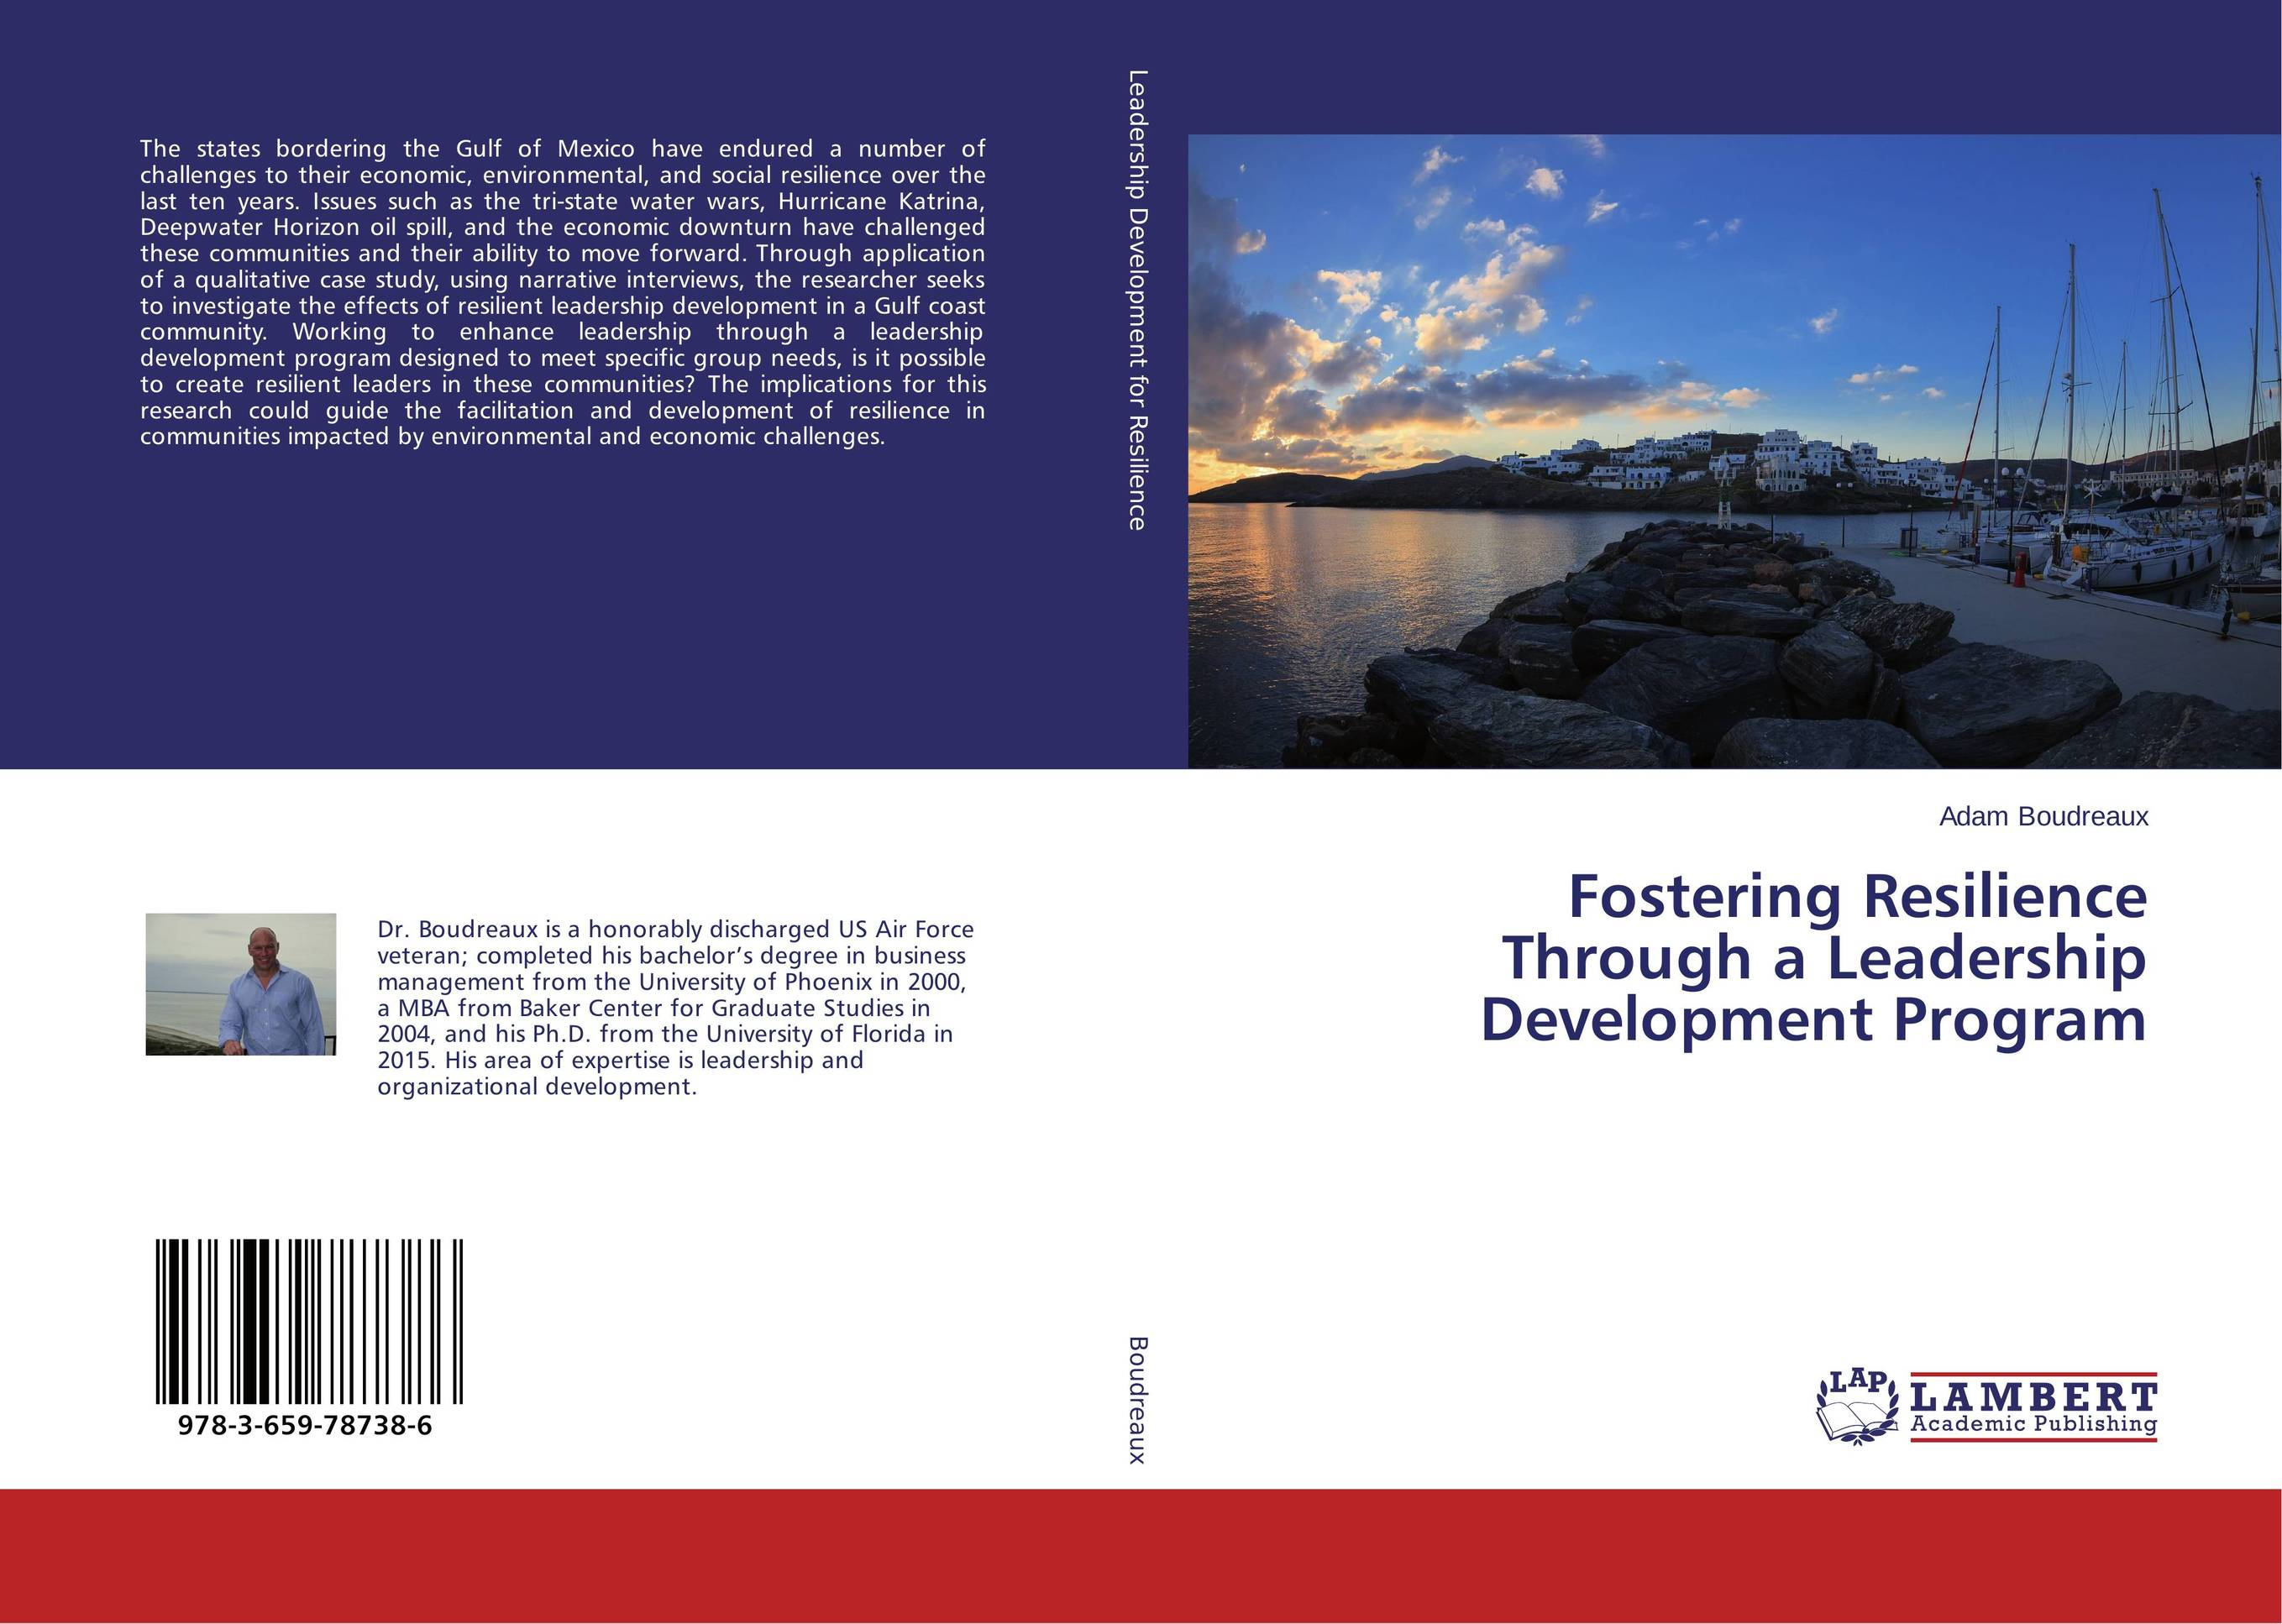 Fostering Resilience Through a Leadership Development Program mustapha bangura a concise guide to local economic development